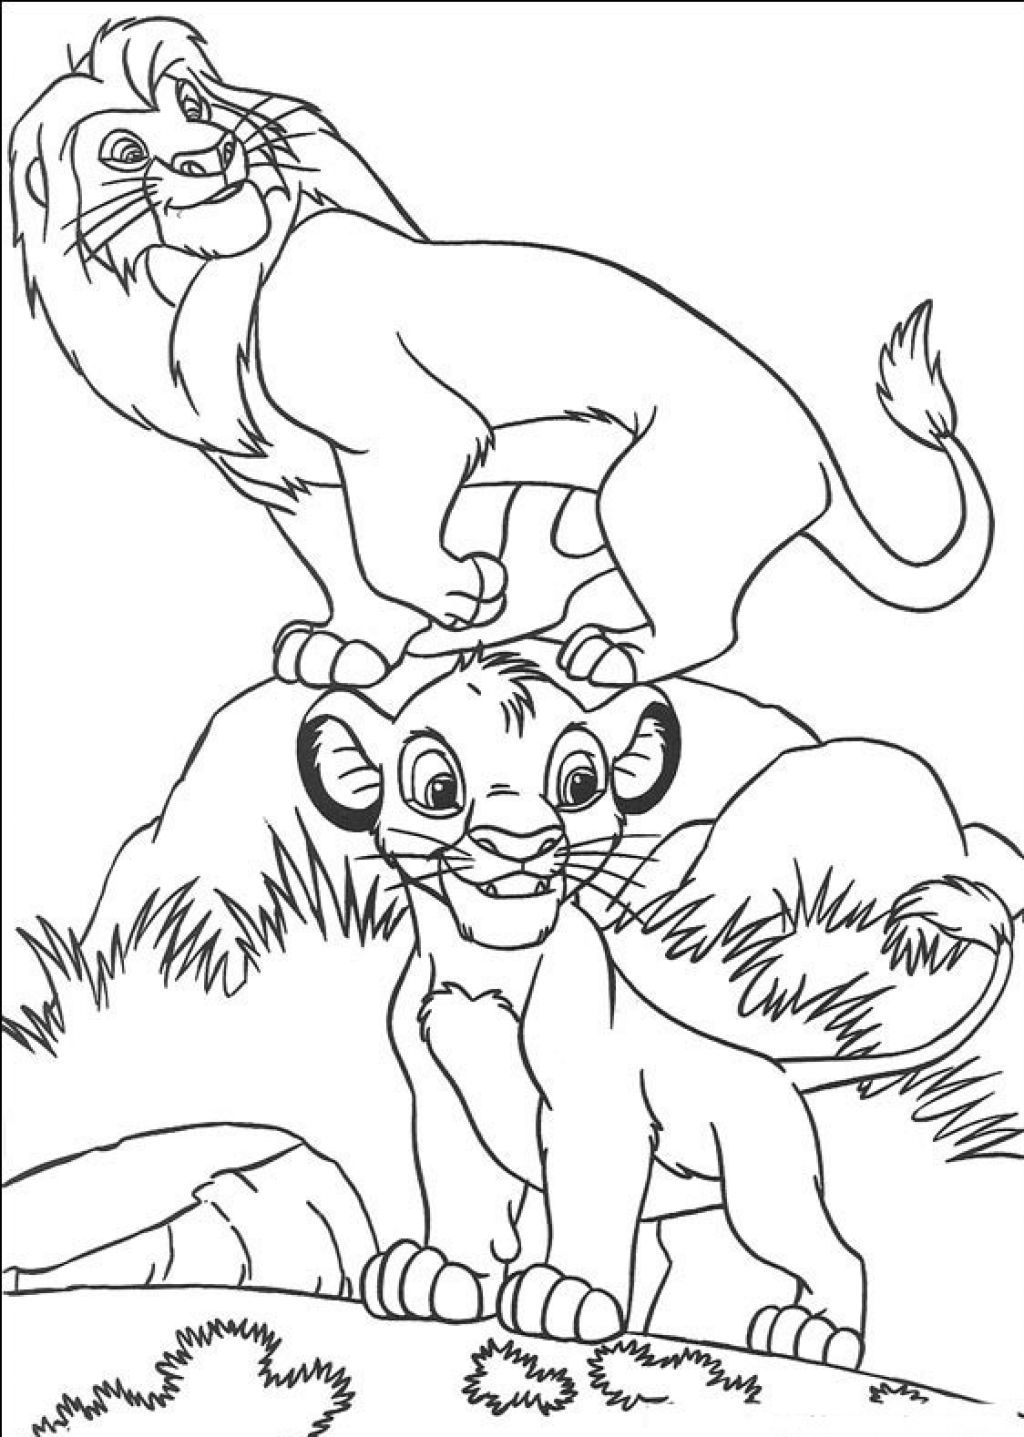 Free Coloring Pages For Pride Download Free Clip Art